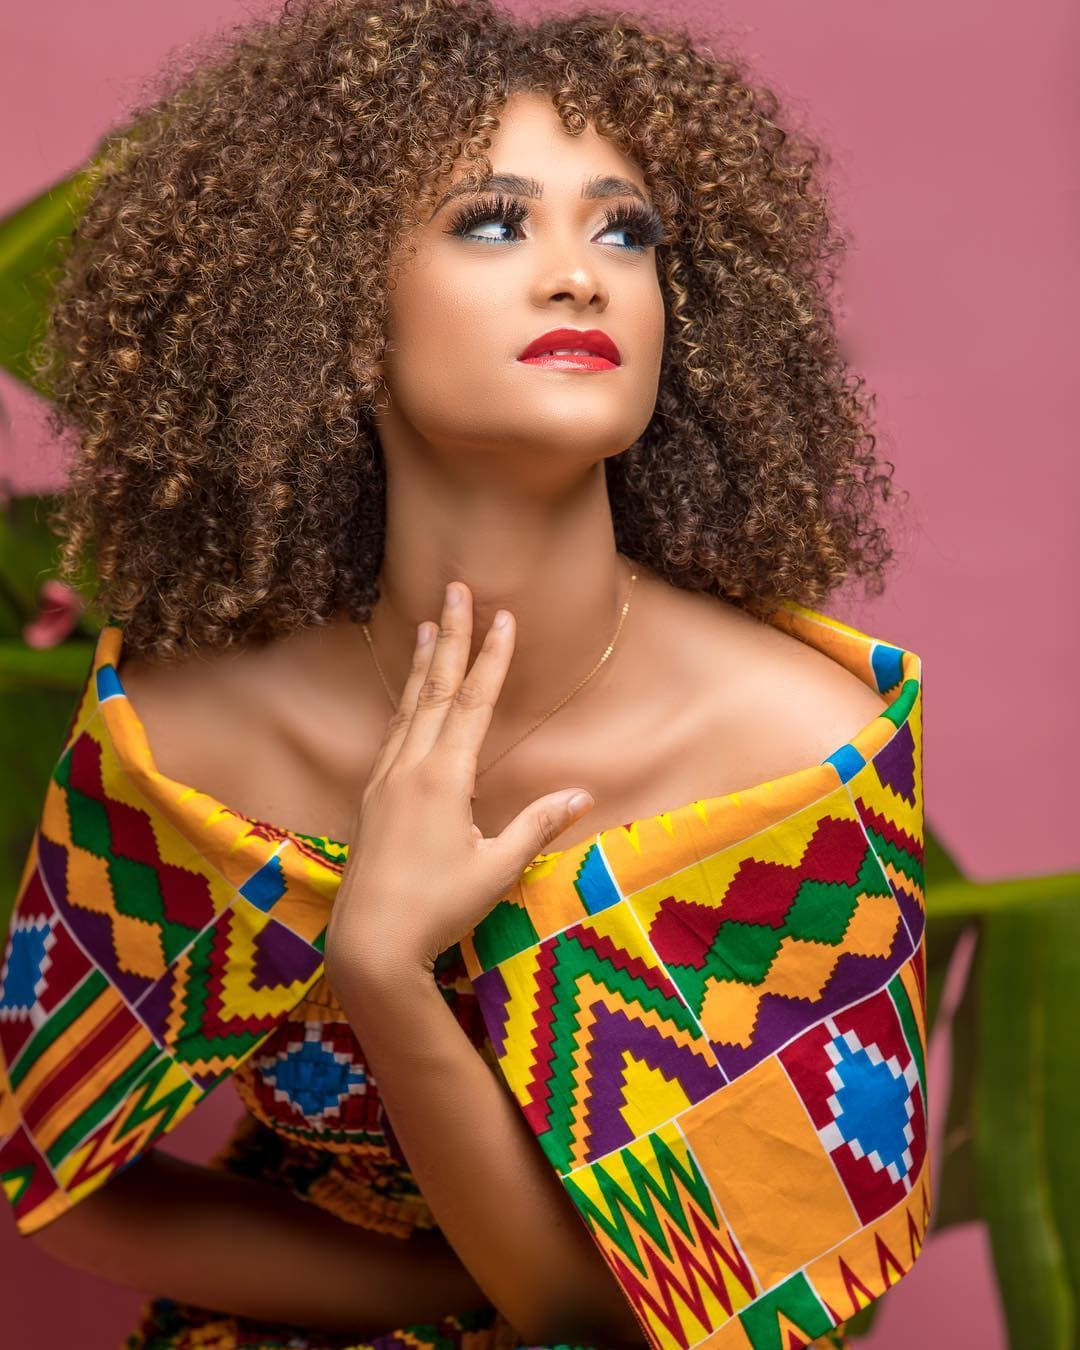 Beca Donald Knott dashes out in new kente photos